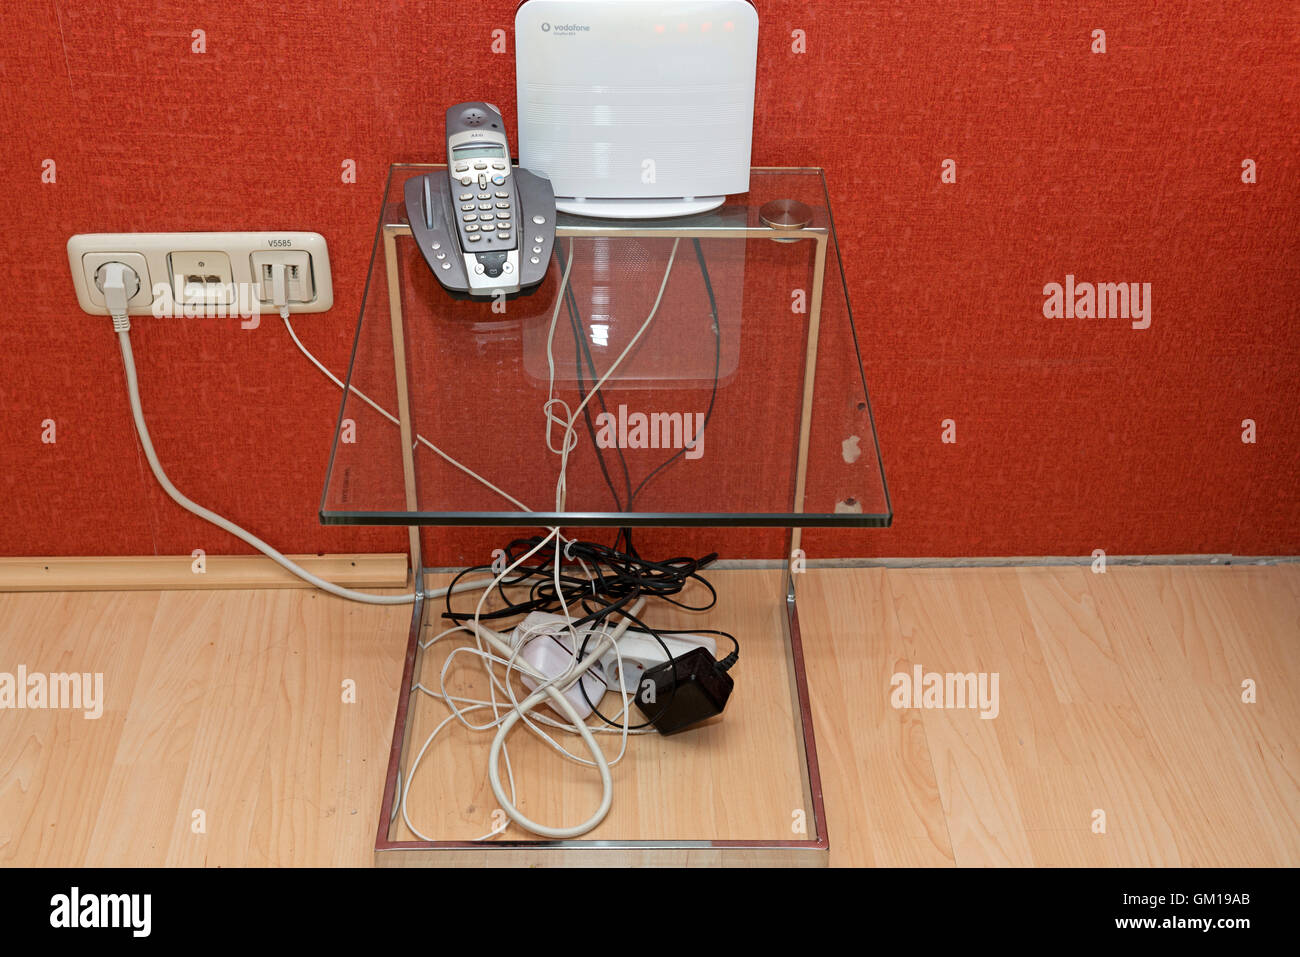 Landline and Wi-Fi box in a German home - Stock Image